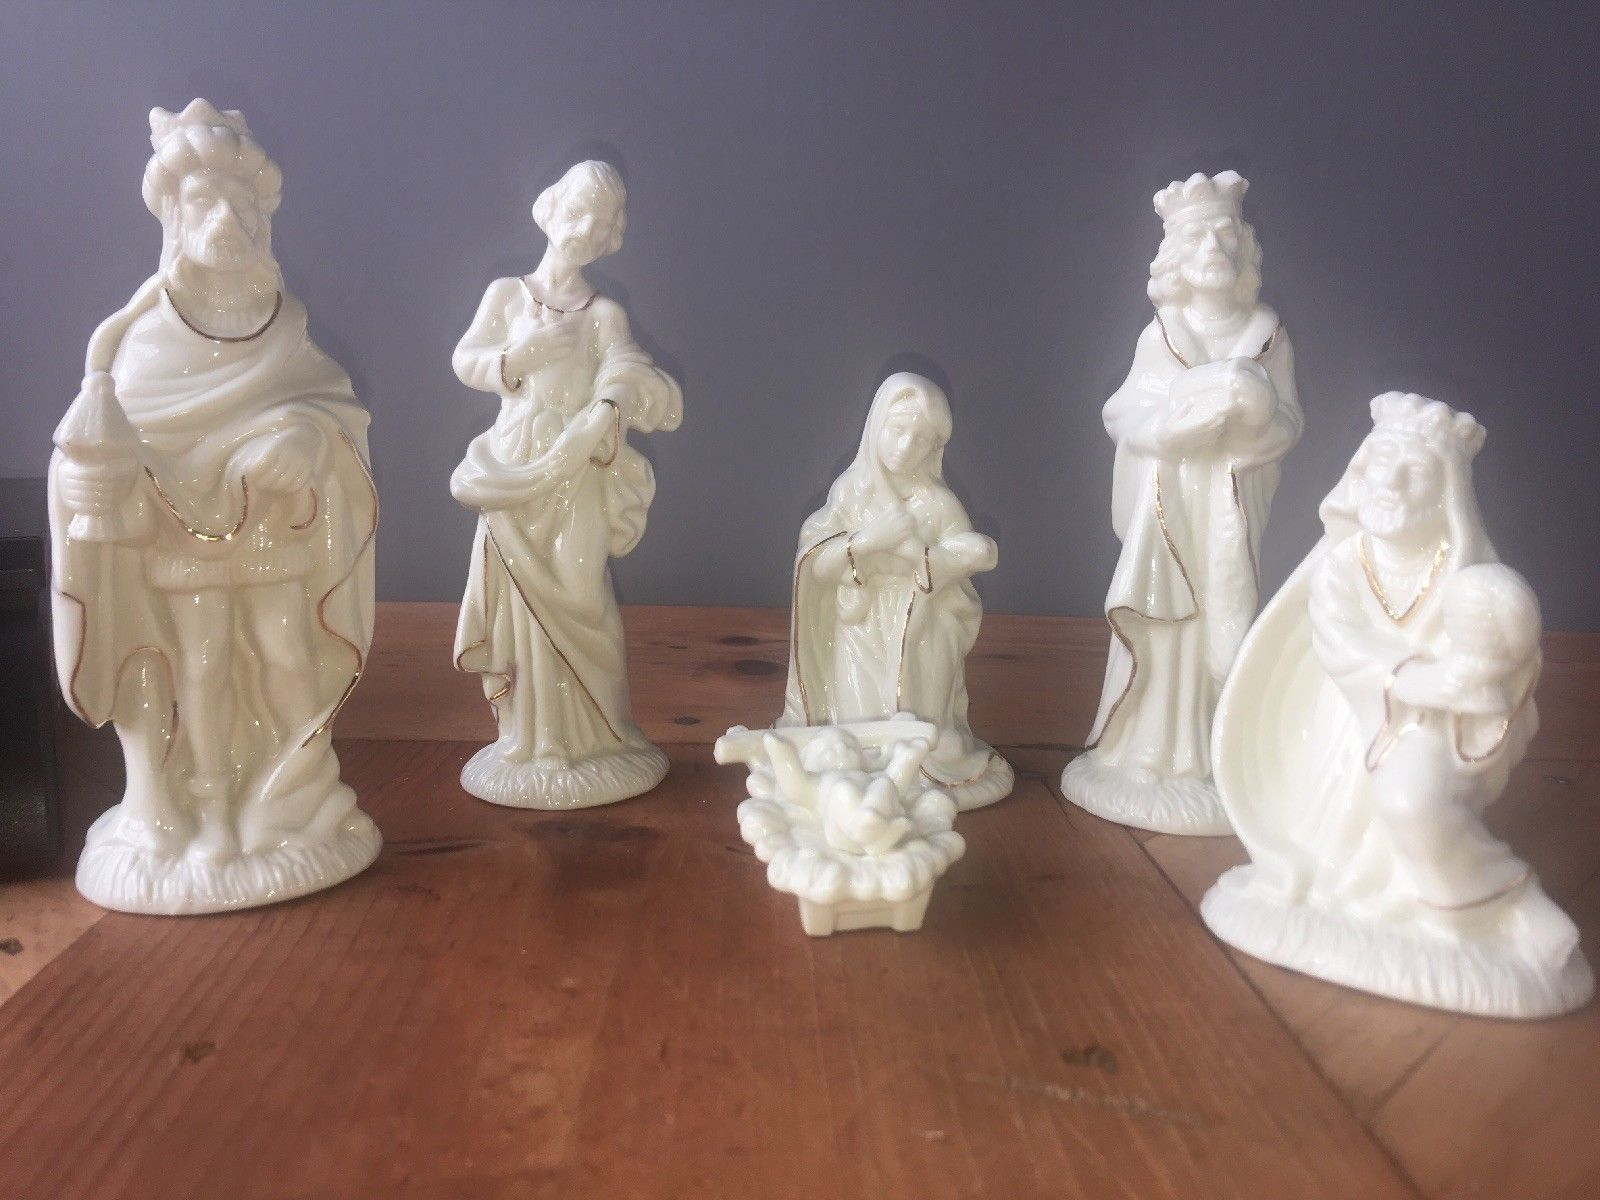 Golden Elegance Enesco 1995 Nativity Set Porcelain Figurines Statues White Gold